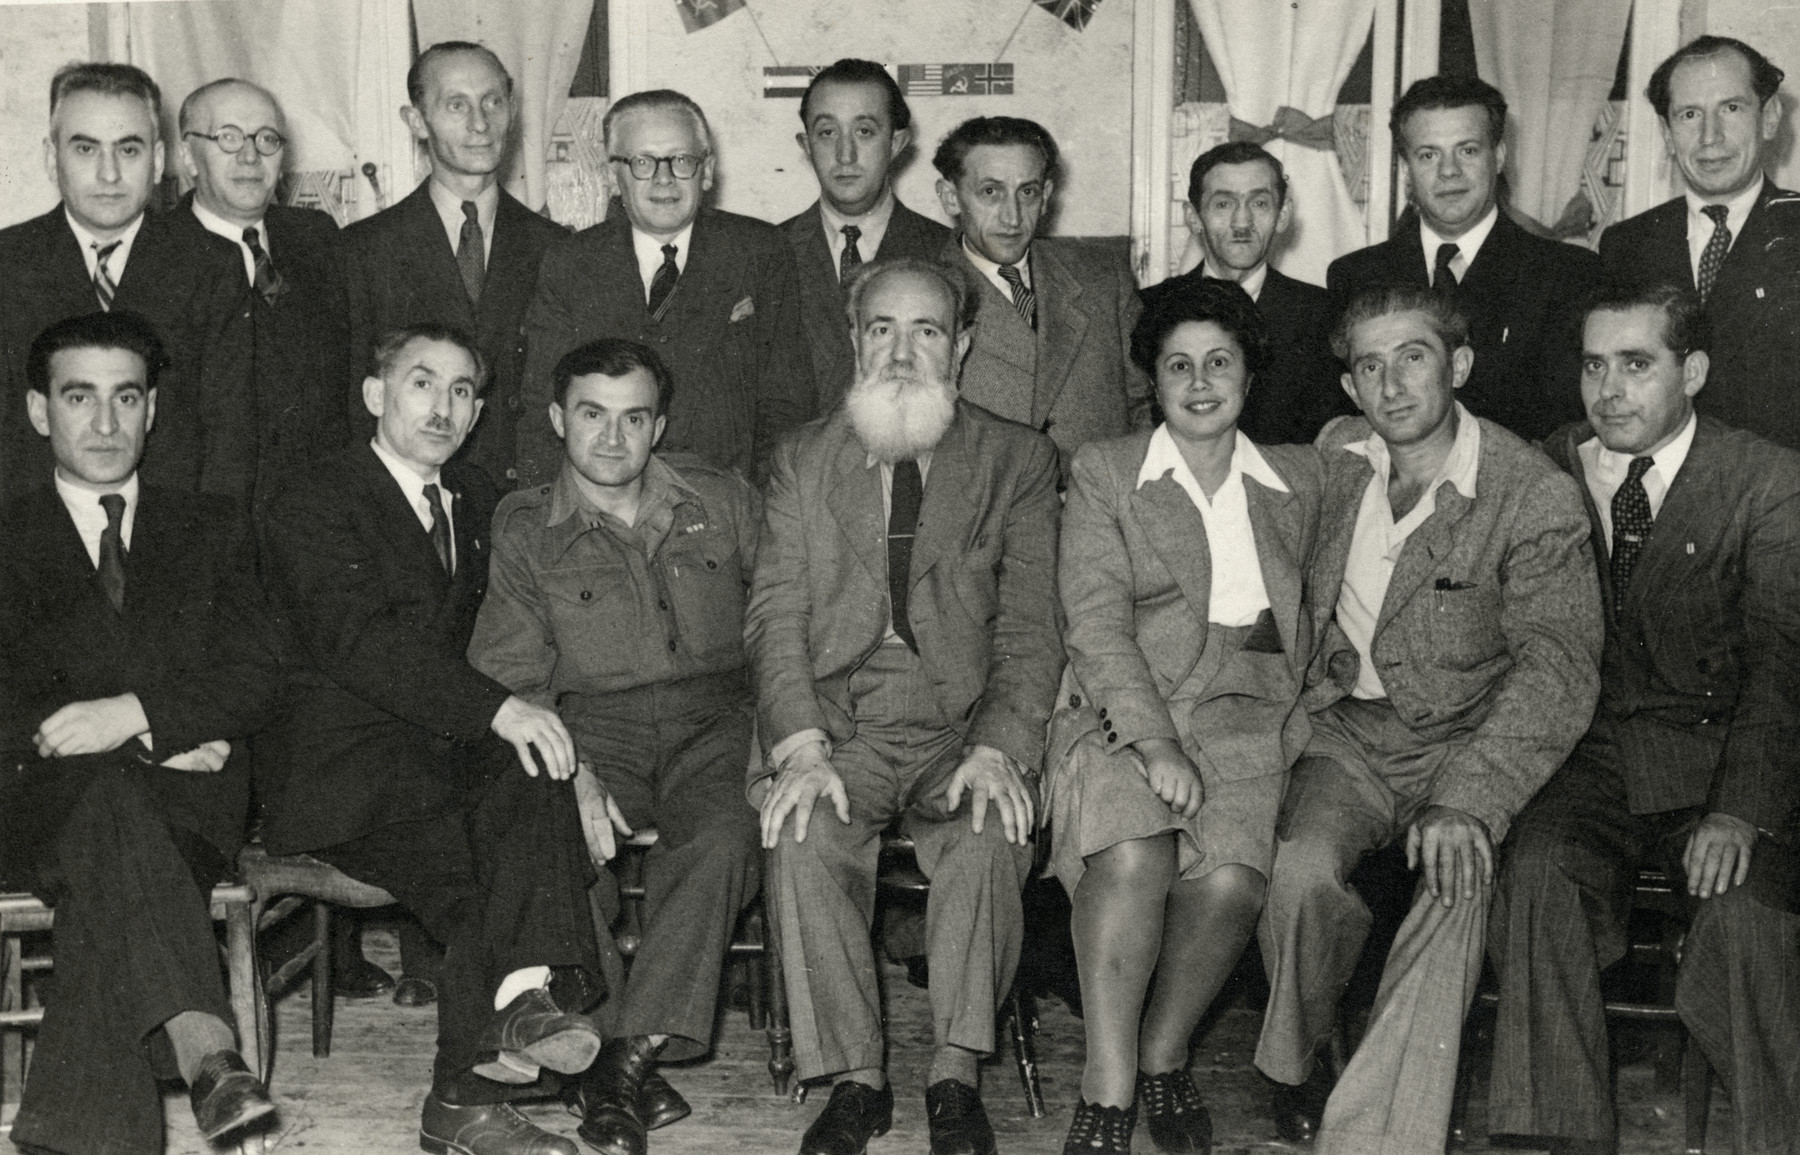 Members of Poalei Zion in Belgium.  Jacob Zerubavel is seated in the center.  Abush Werber is seated on the far left.  Joseph Epstein is standing on the right and the Jewish Brigade soldier Baruch Lelonik is seated third from the left.